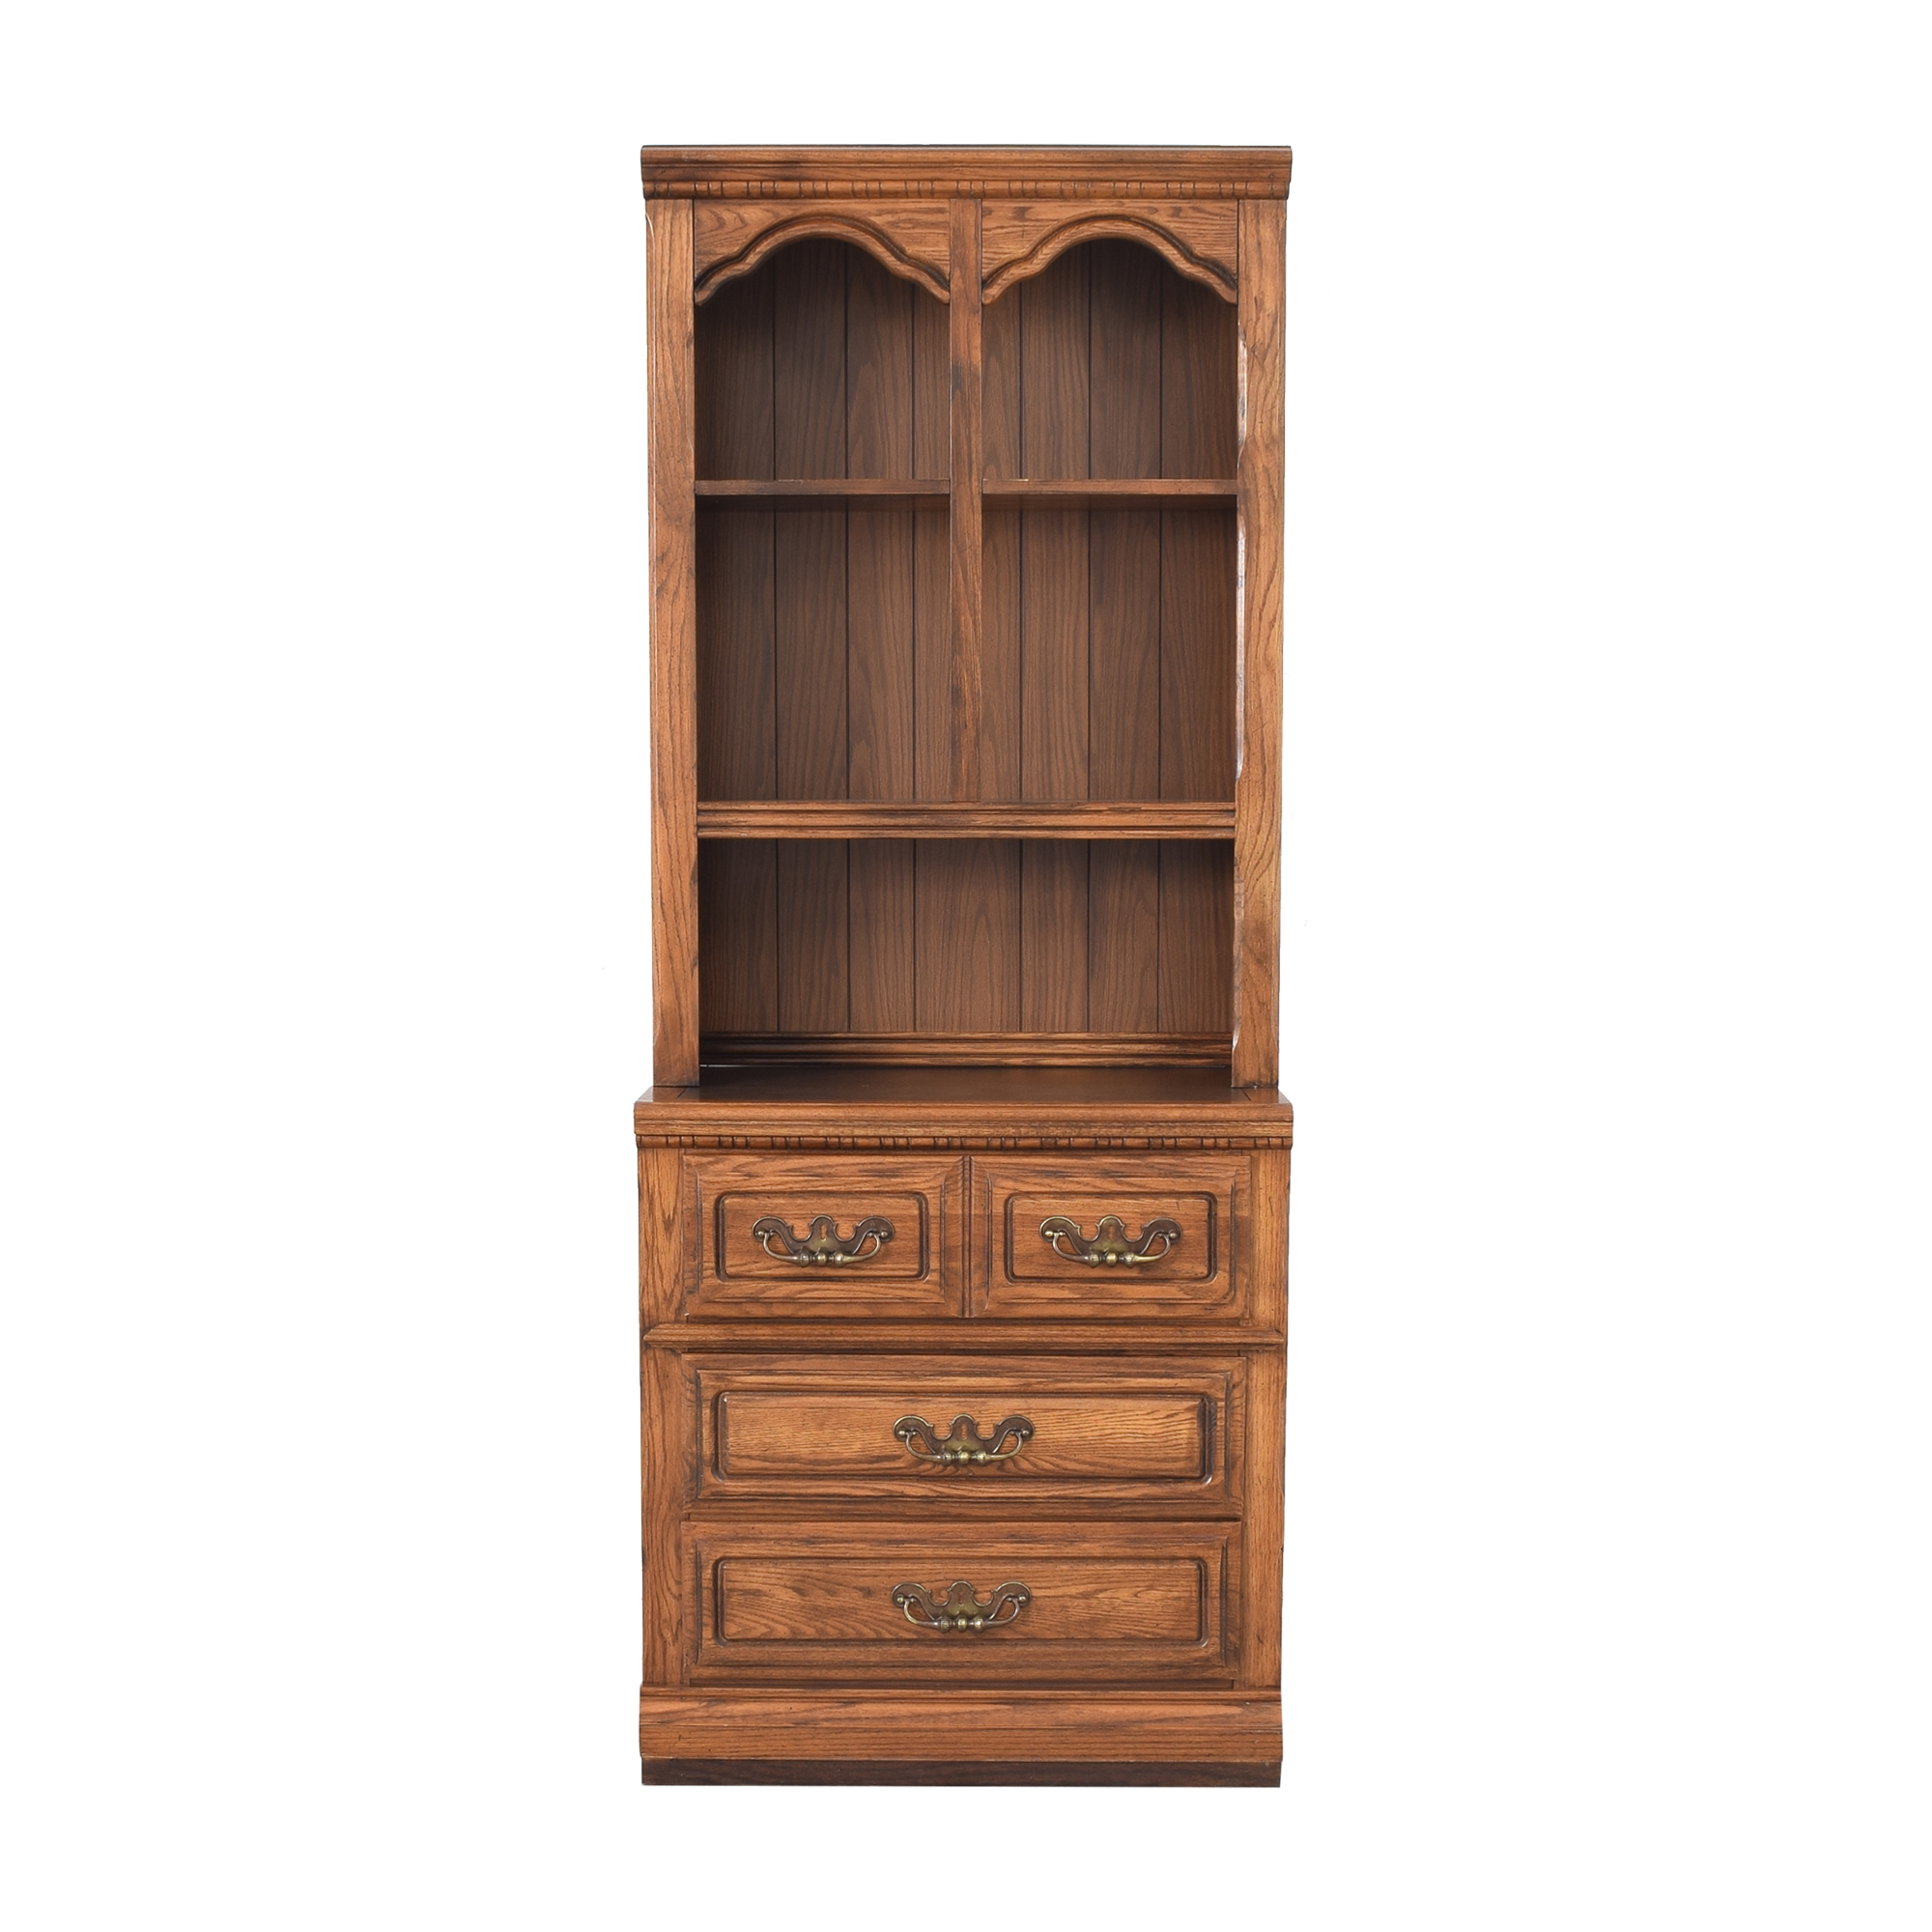 Lea Furniture Lea Furniture Cabinet Bookcase Storage